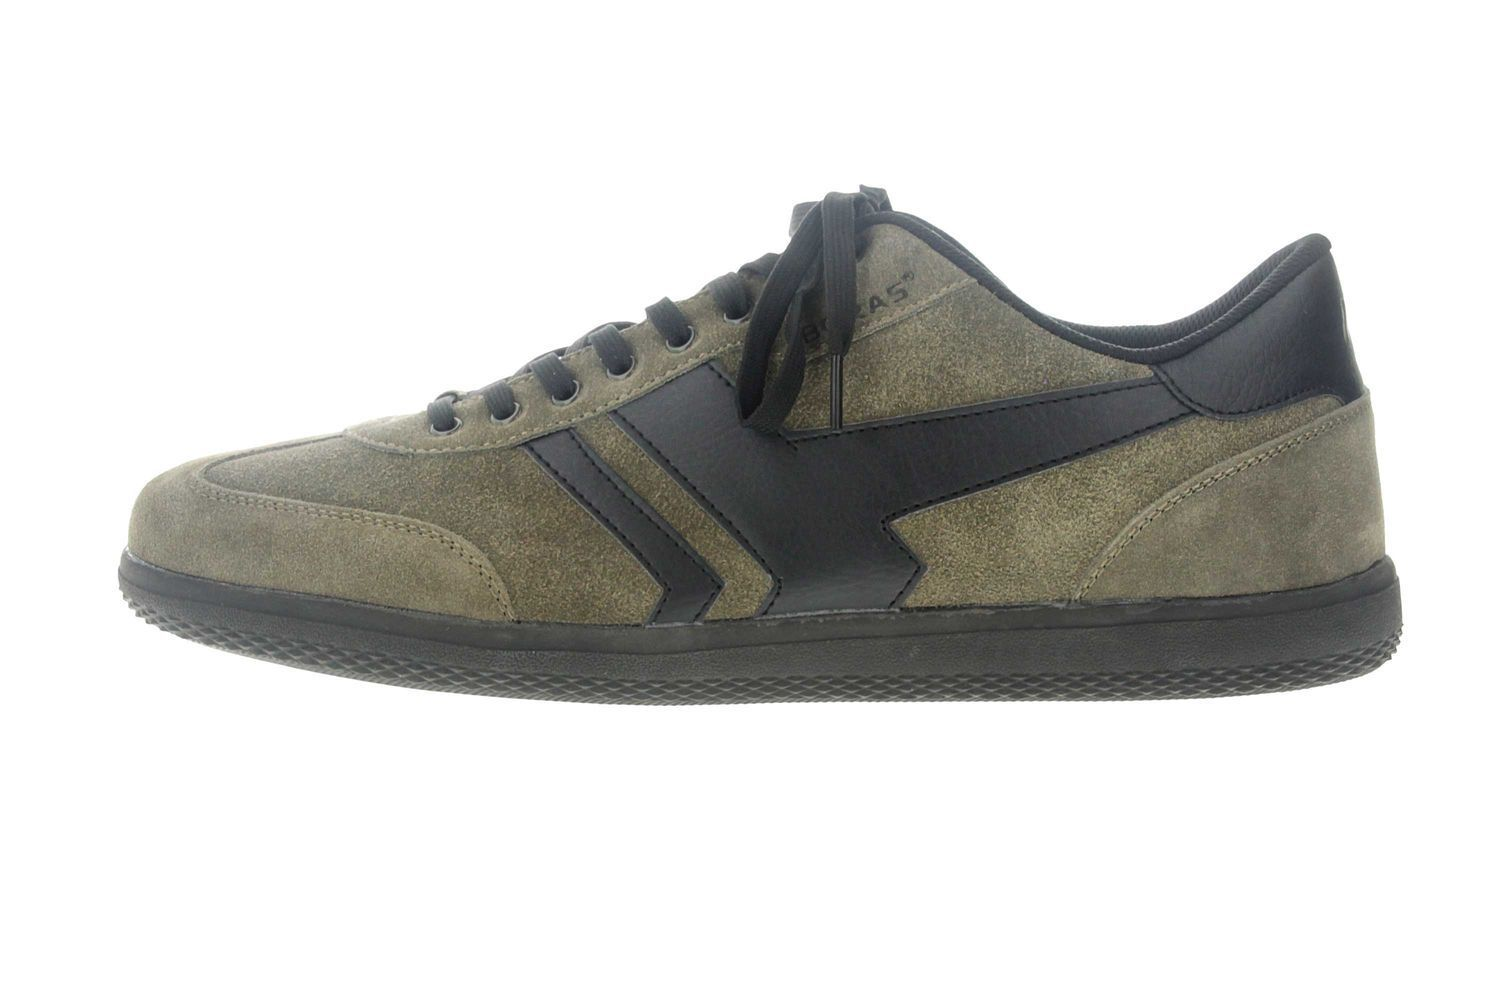 Boras - Socca - Men's Sneakers 3541-1527 - Green shoes in plus Sizes